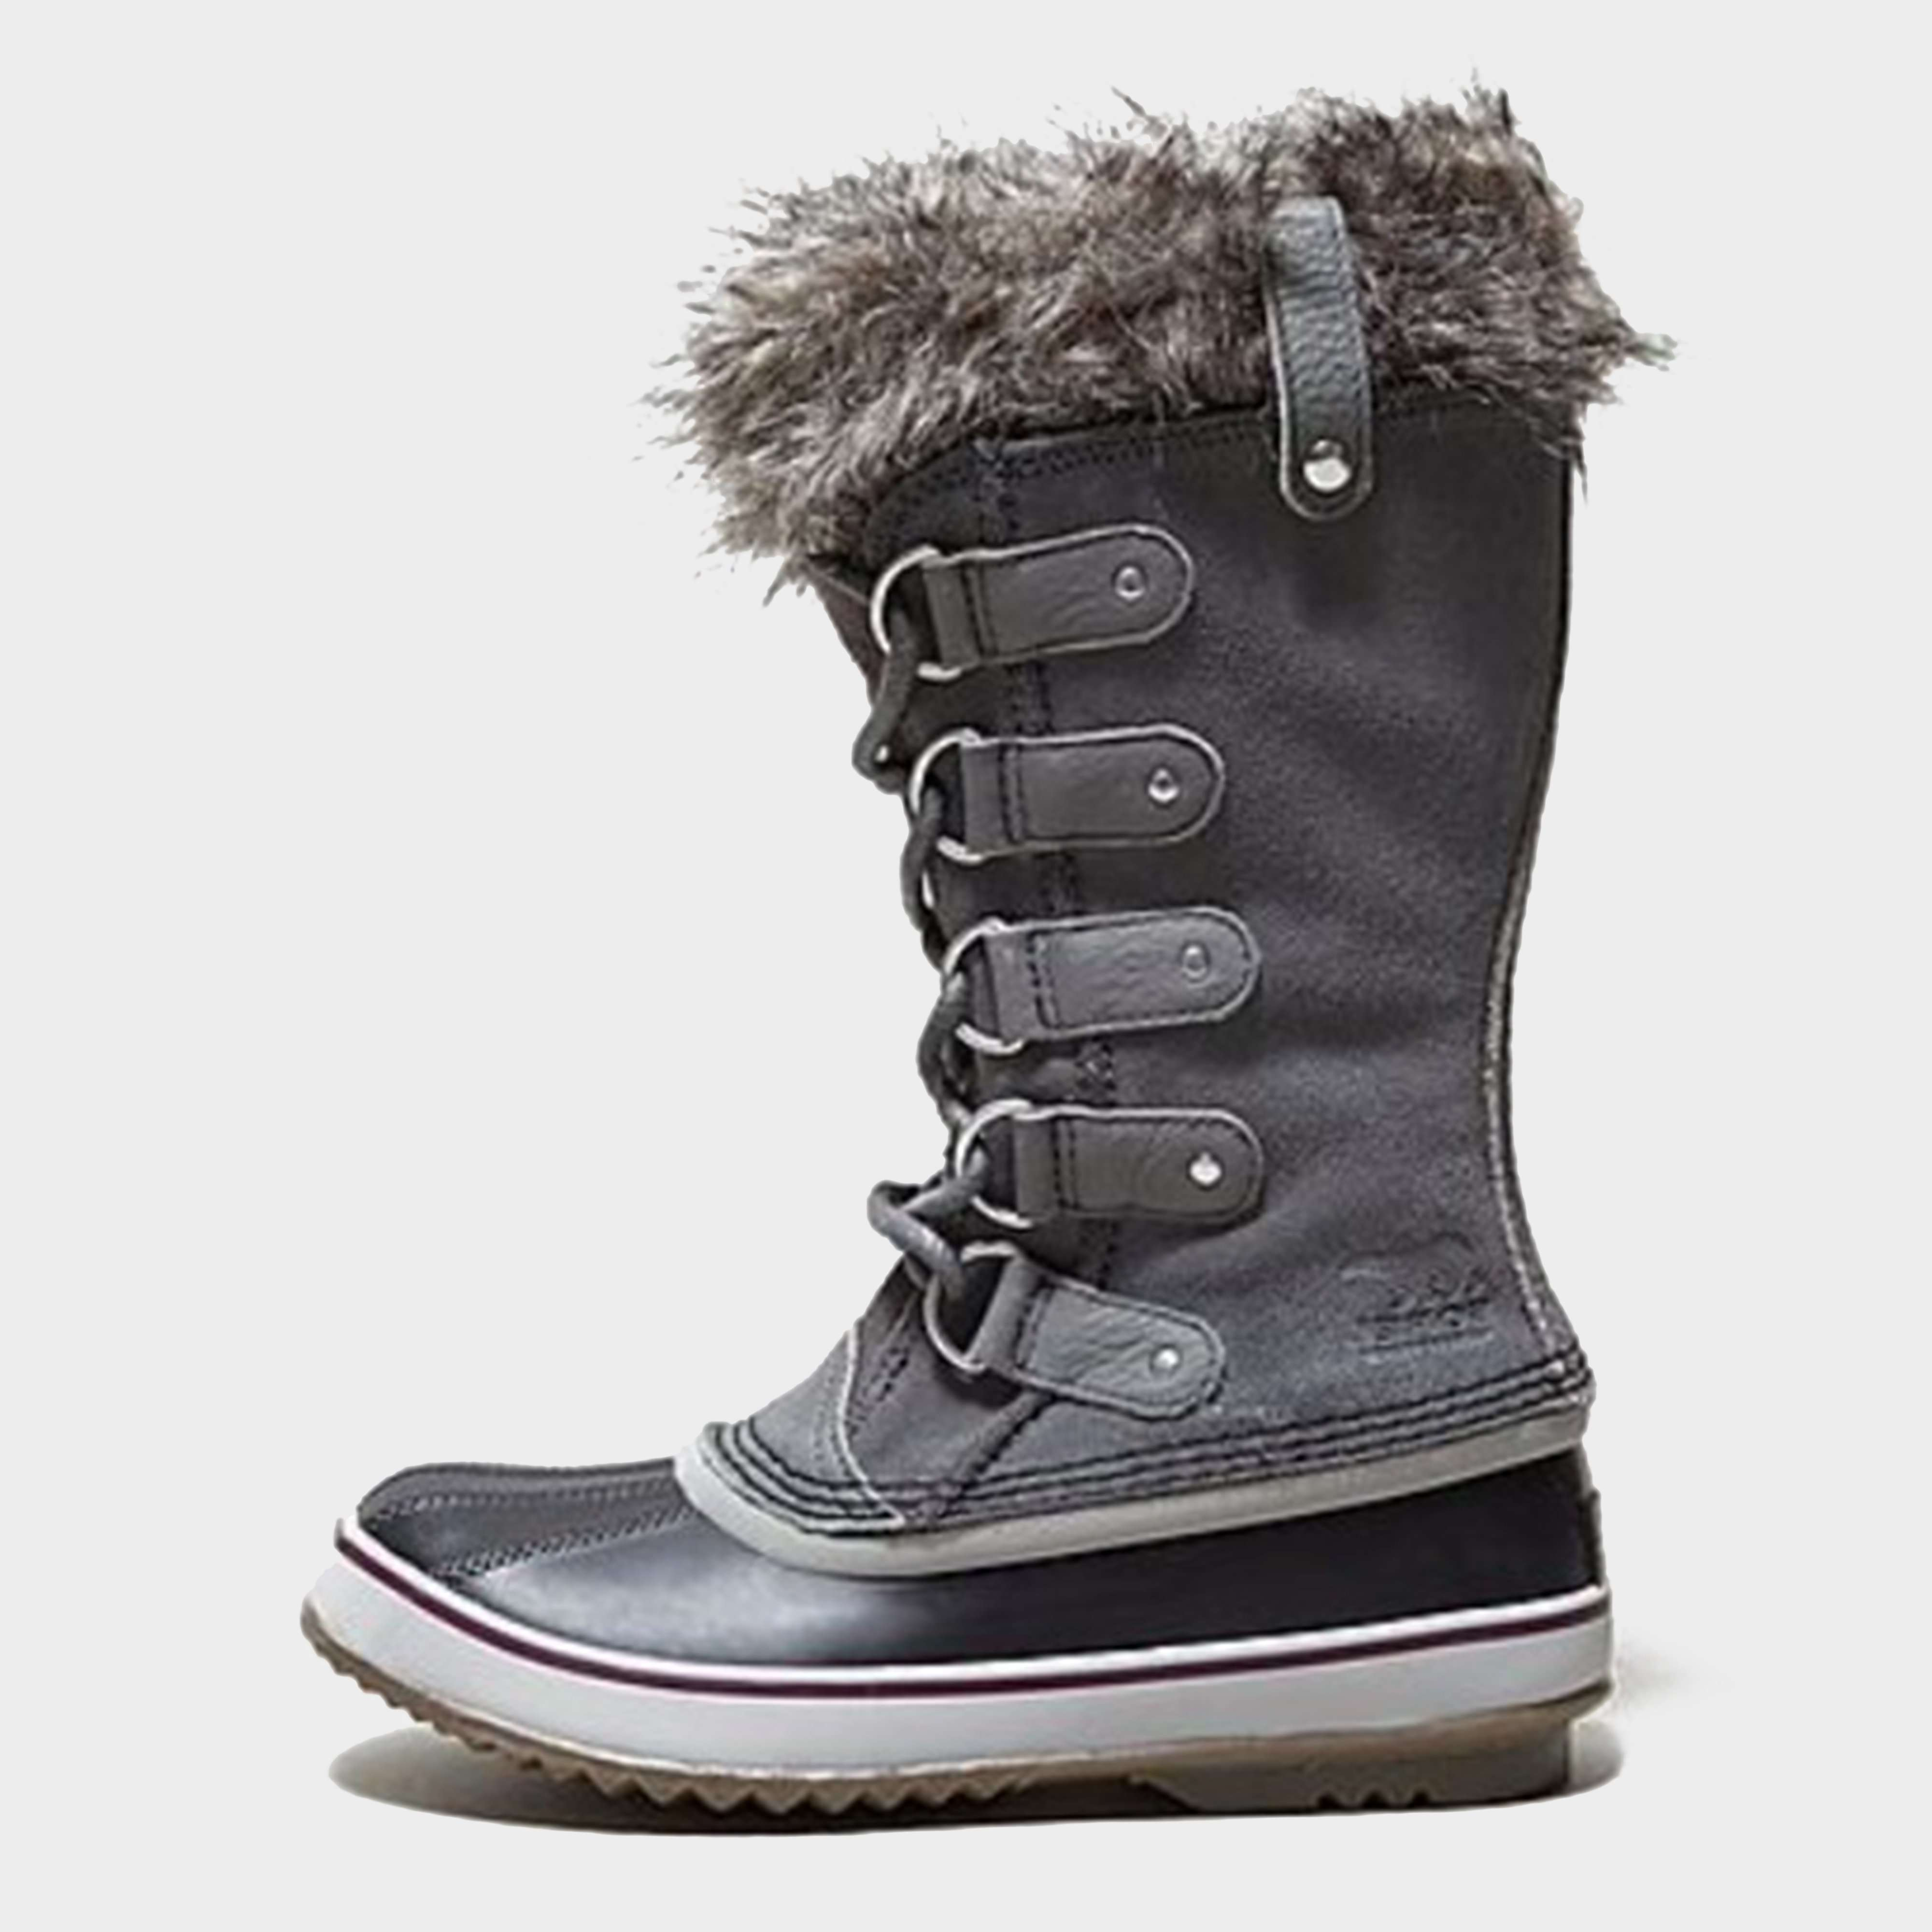 SOREL Women's Joan of Arctic™ Waterproof Snow Boot